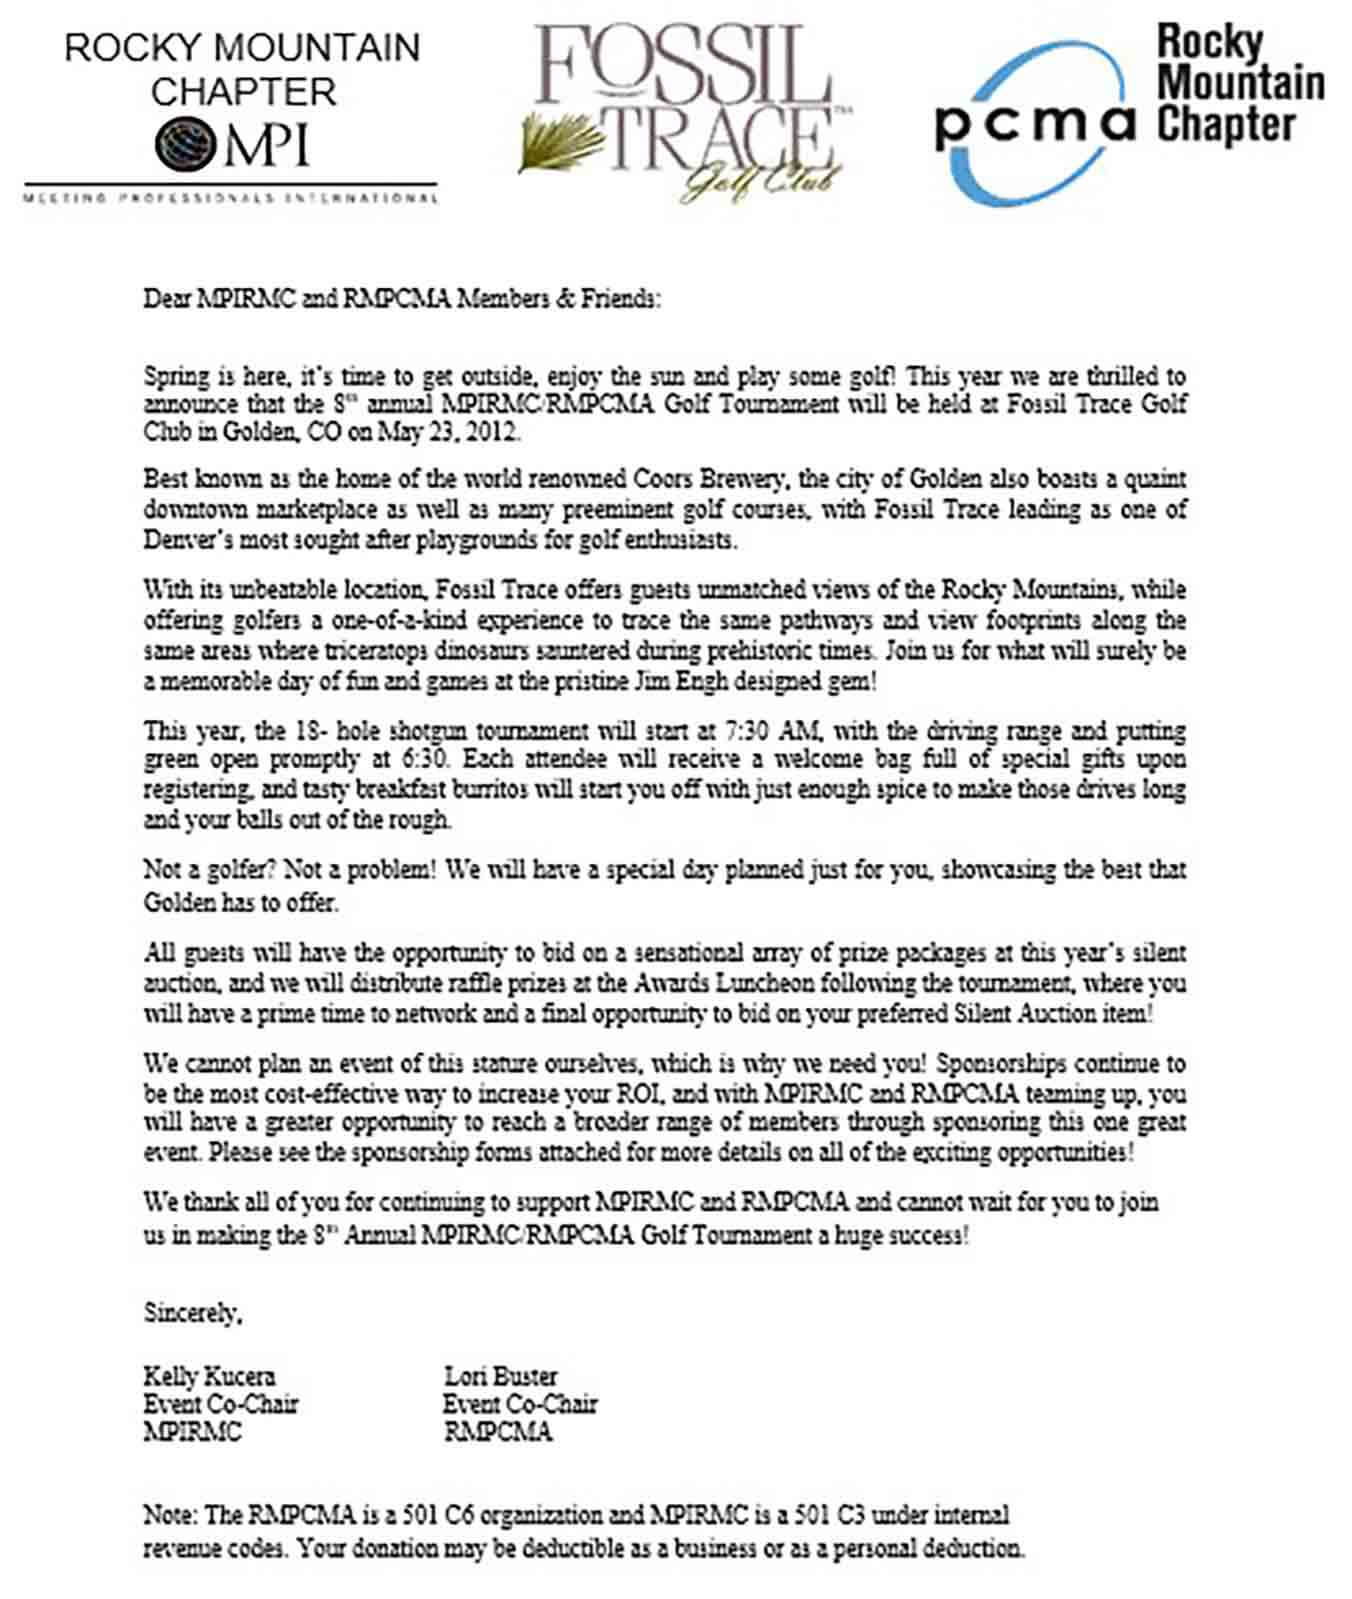 Corporate Golf Sponsorship Letter